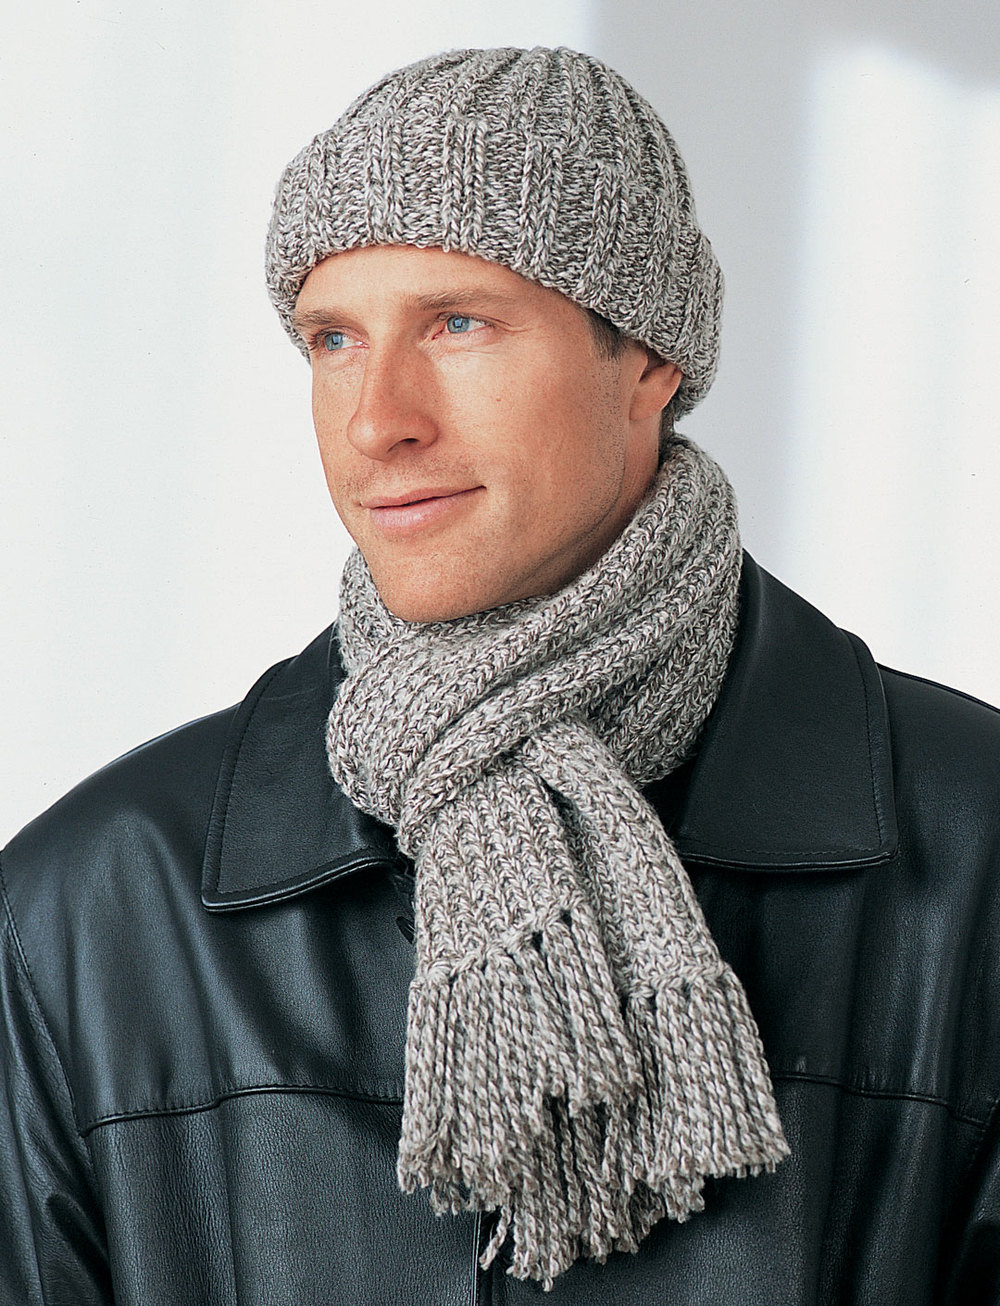 Scarfs Men Scarf And Casual On Pinterest Nice Scarves: Men's Winter Hat And Scarf